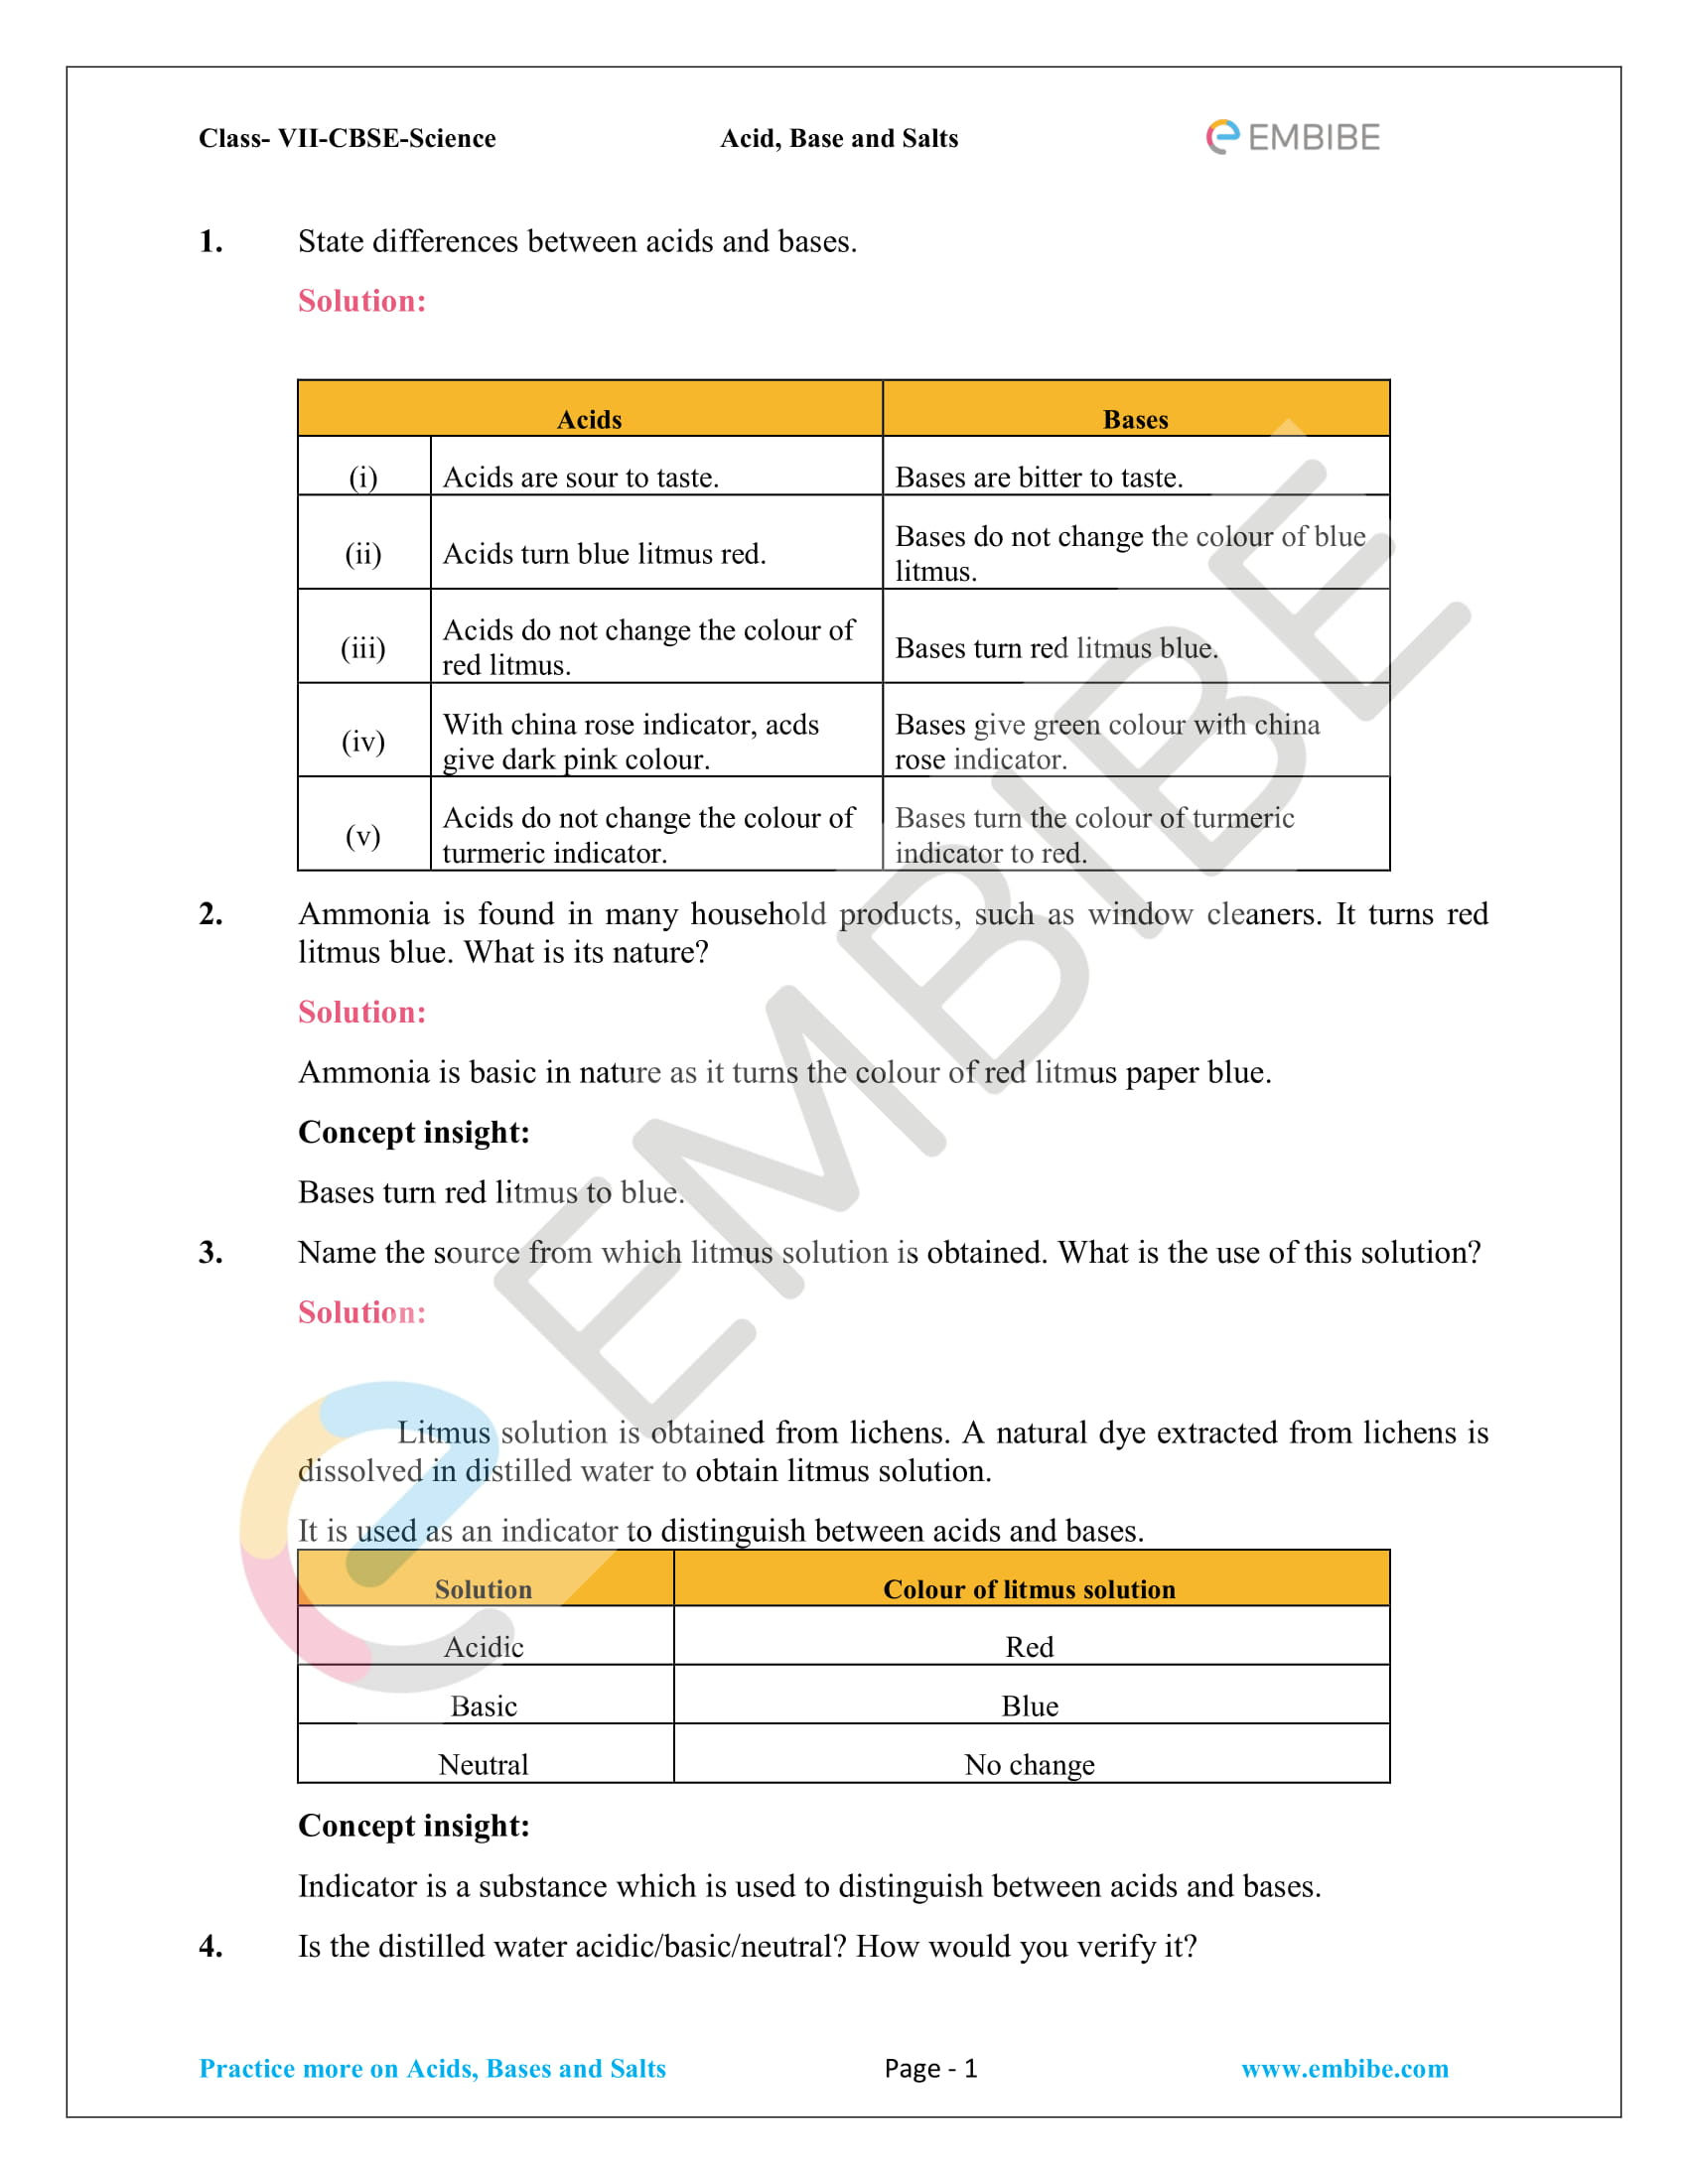 CBSE NCERT Solutions for Class 7 Science Chapter 5 Acids, Bases and Salts PDF